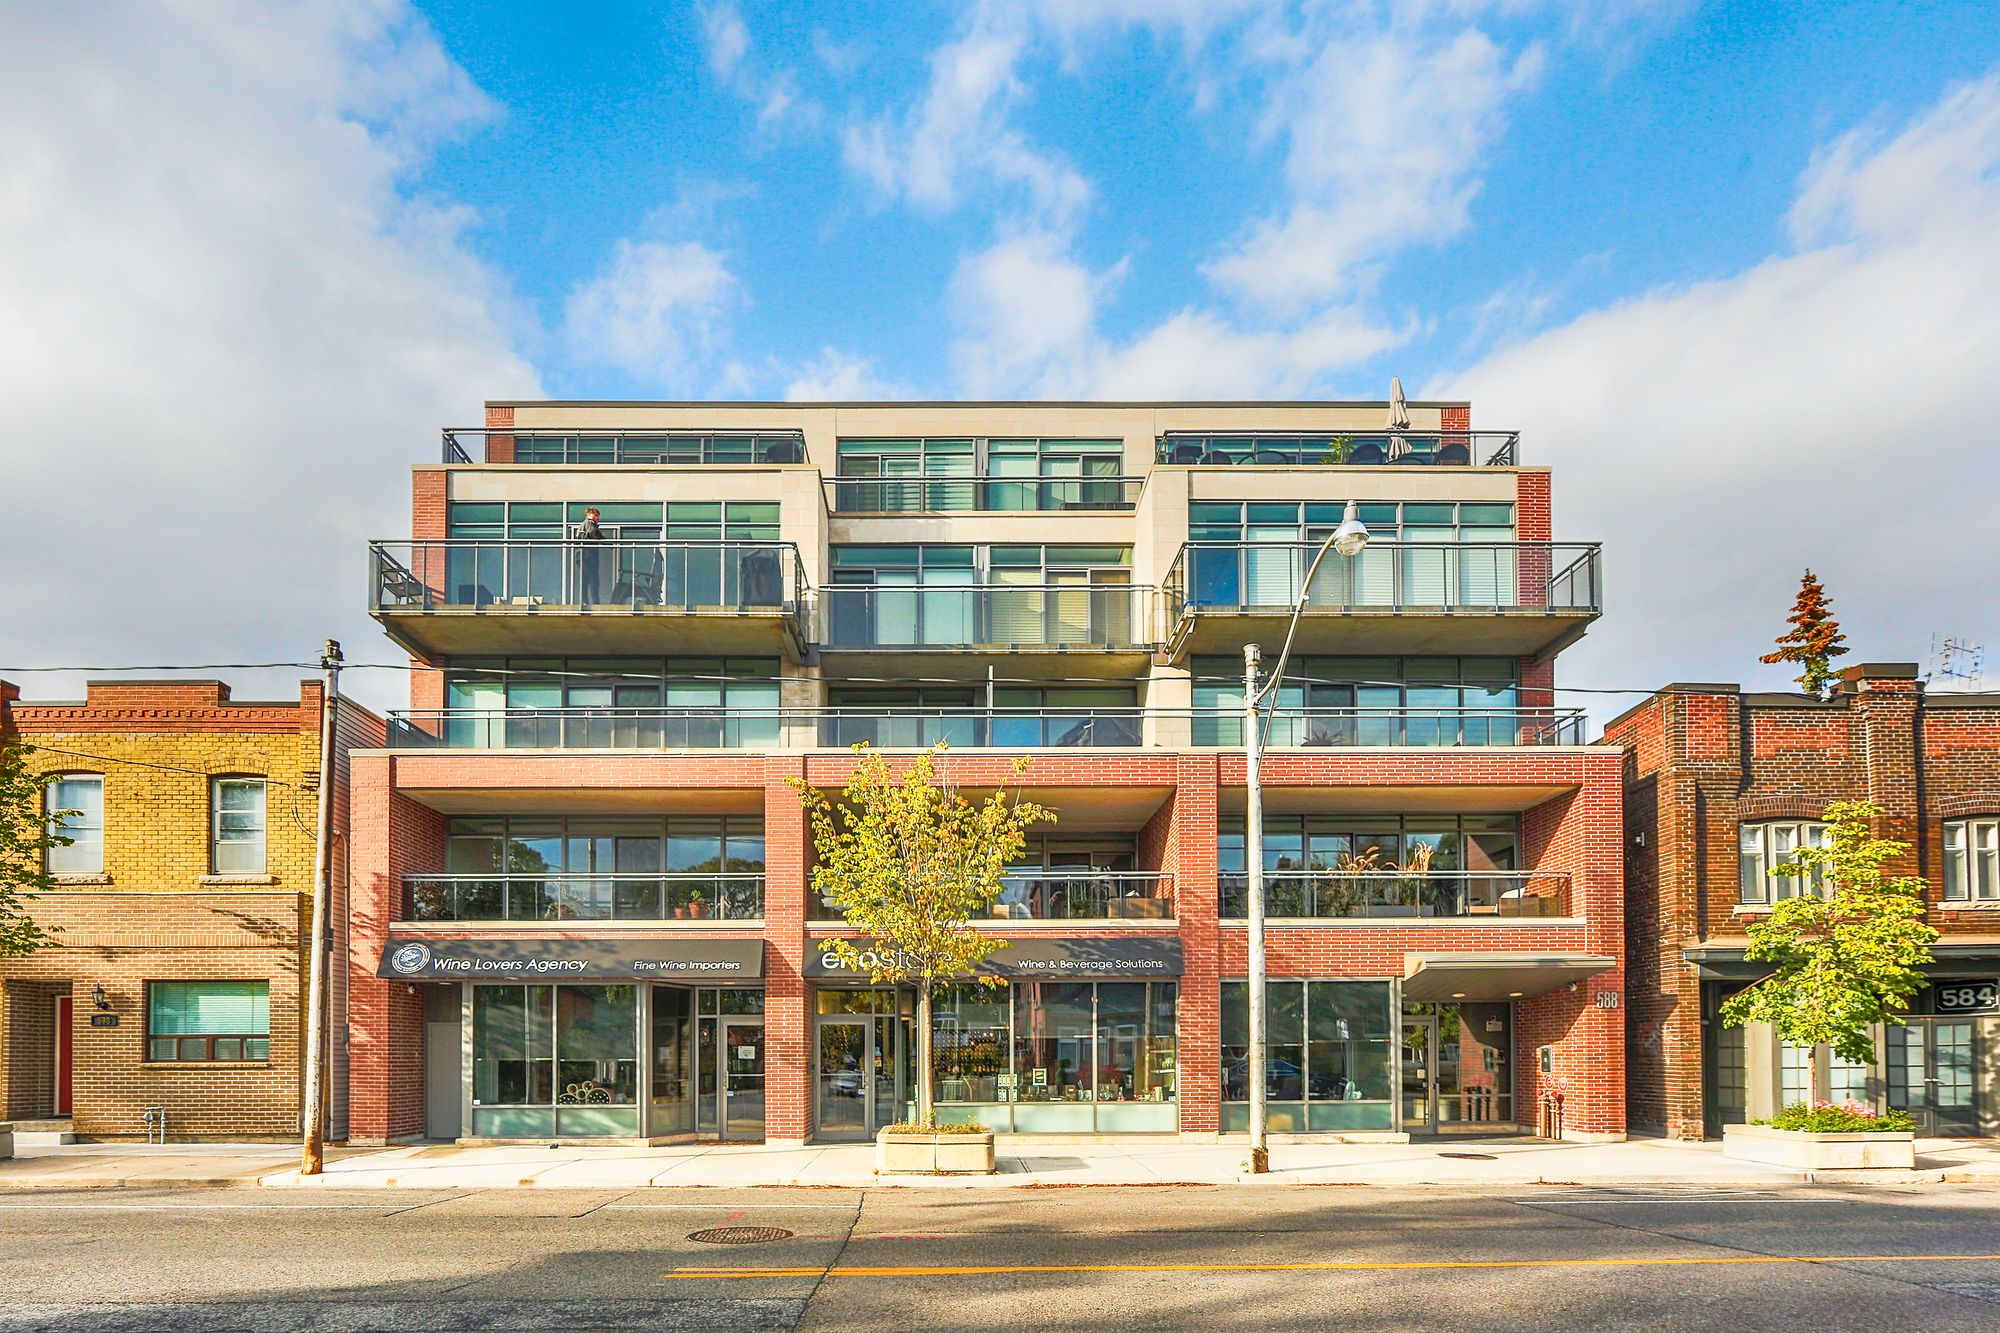 588 Annette St. This loft at Volta Lofts is located in  West End, Toronto - image #2 of 4 by Strata.ca